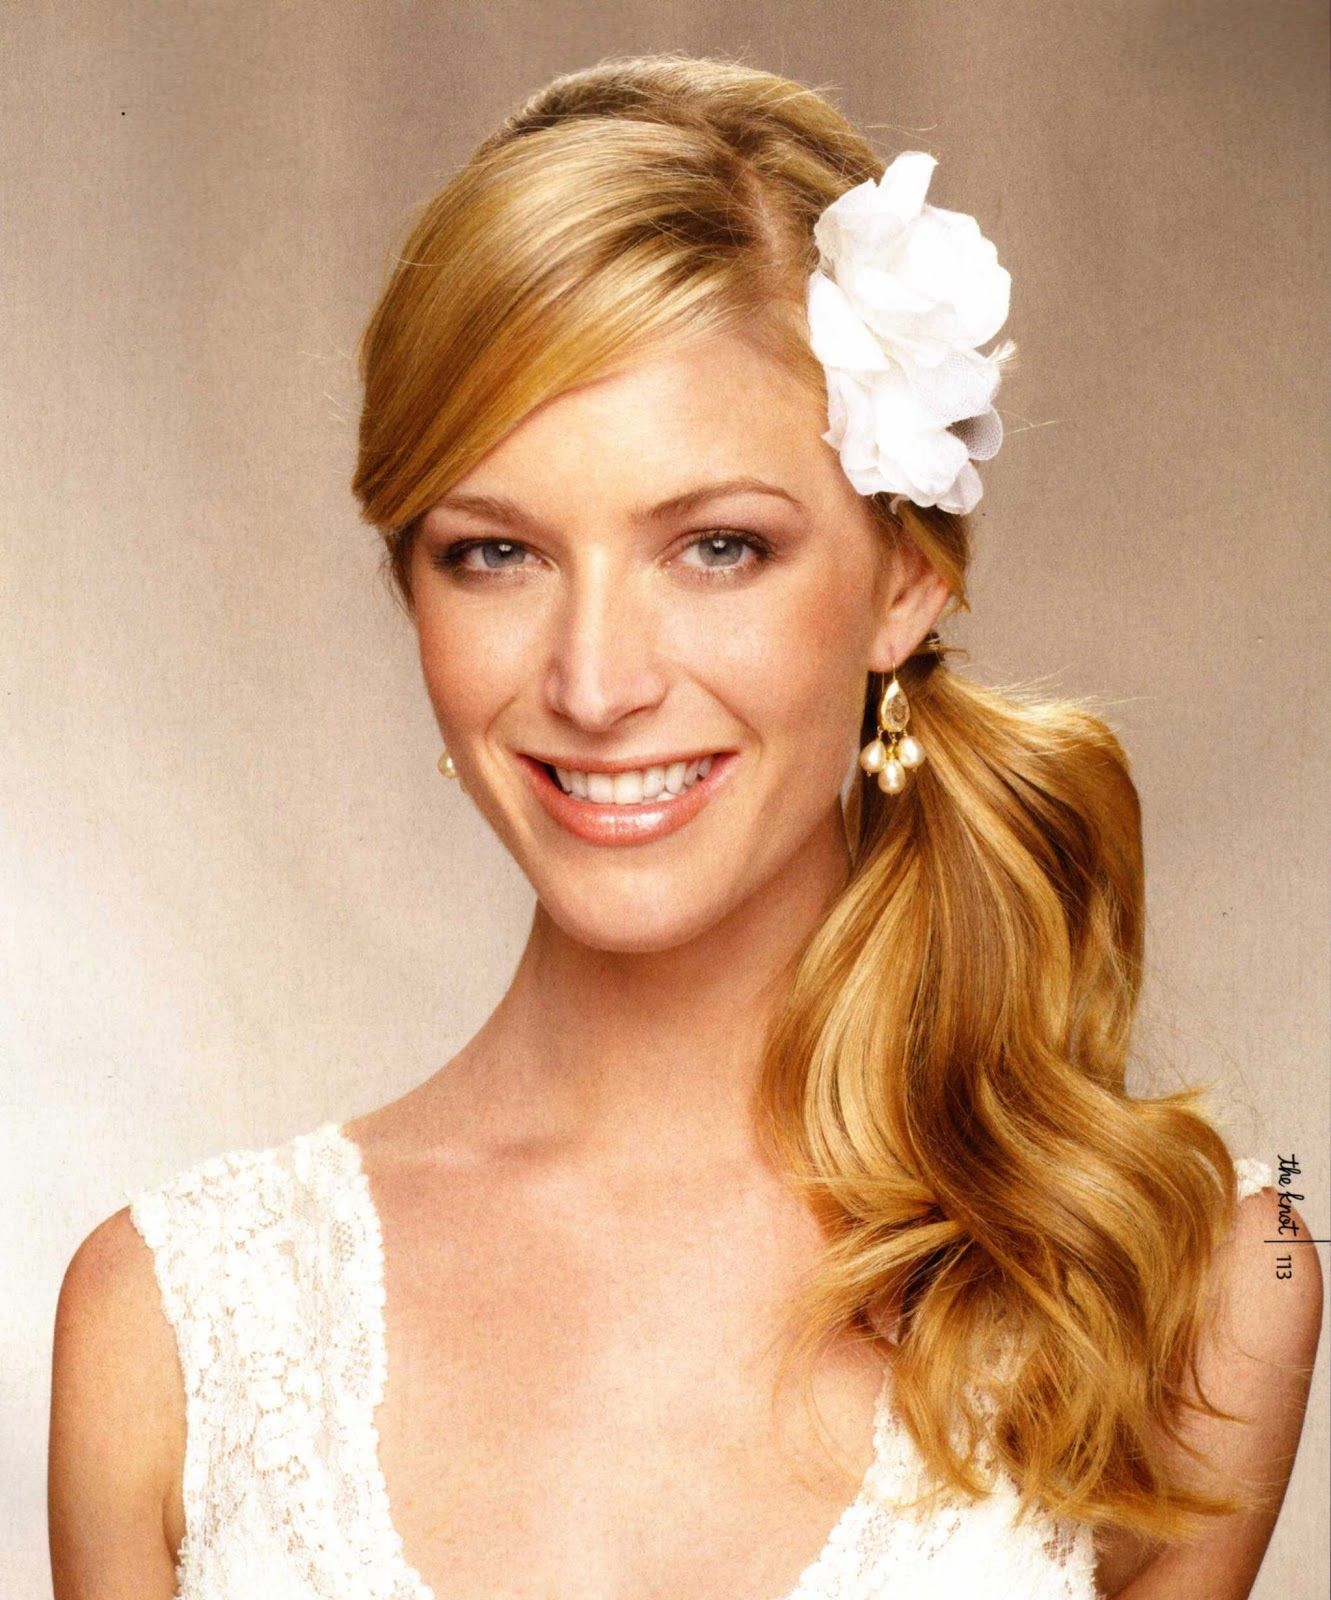 Marvelous Bridesmaid Hairstyles Hairstyles And Bridesmaid On Pinterest Short Hairstyles Gunalazisus